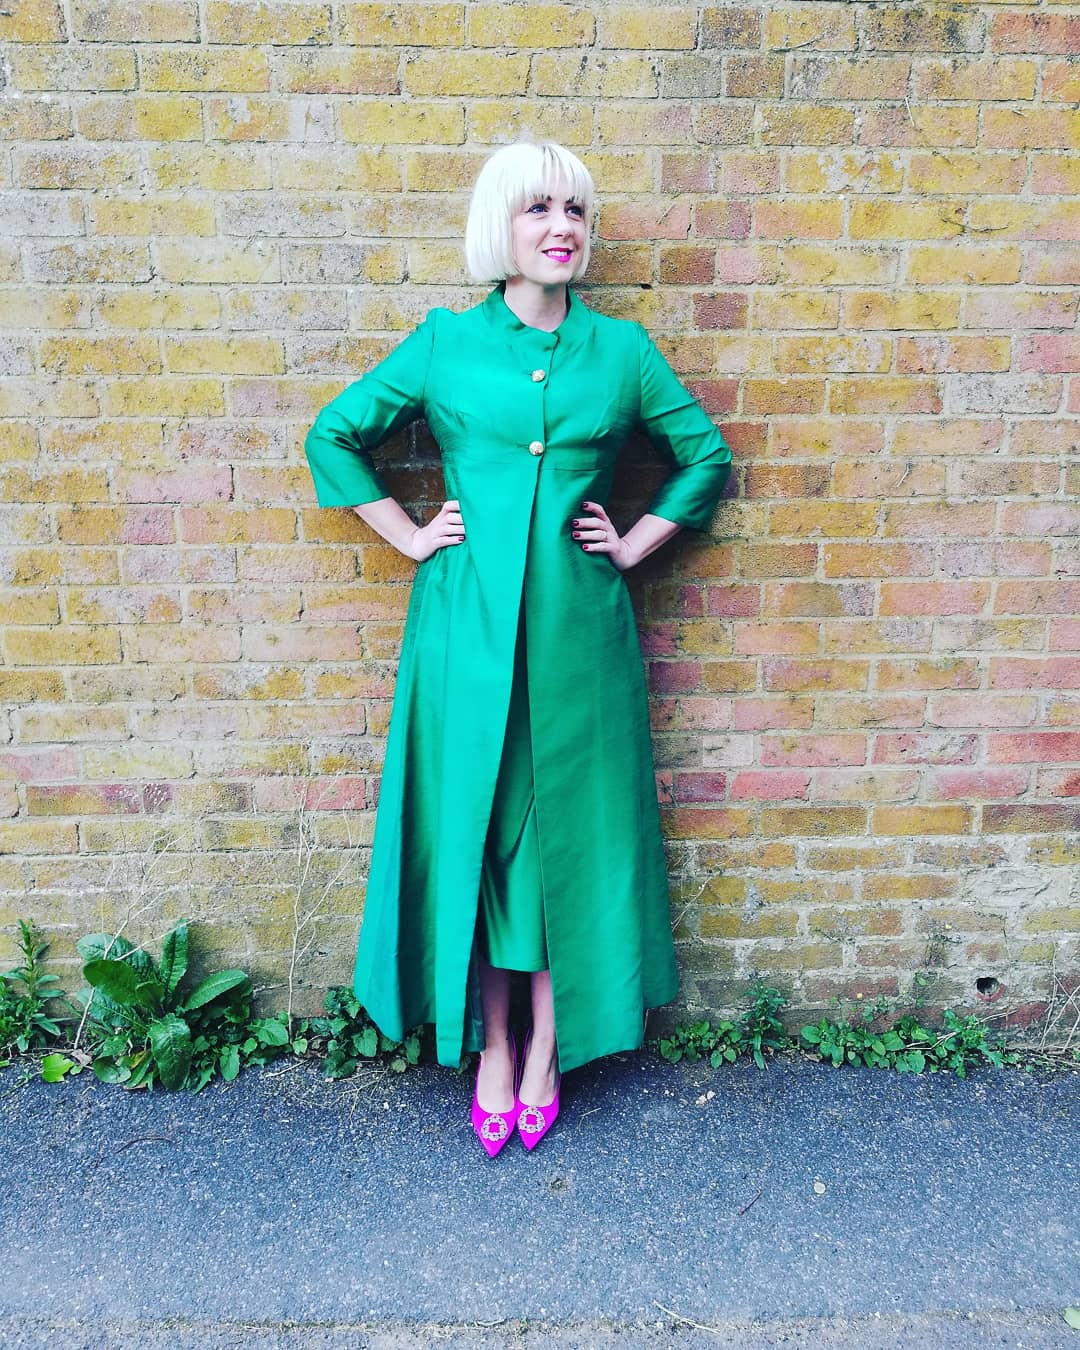 Green queen. 1960s silk skirt suit by  Kitty Copeland  found at a boot sale.